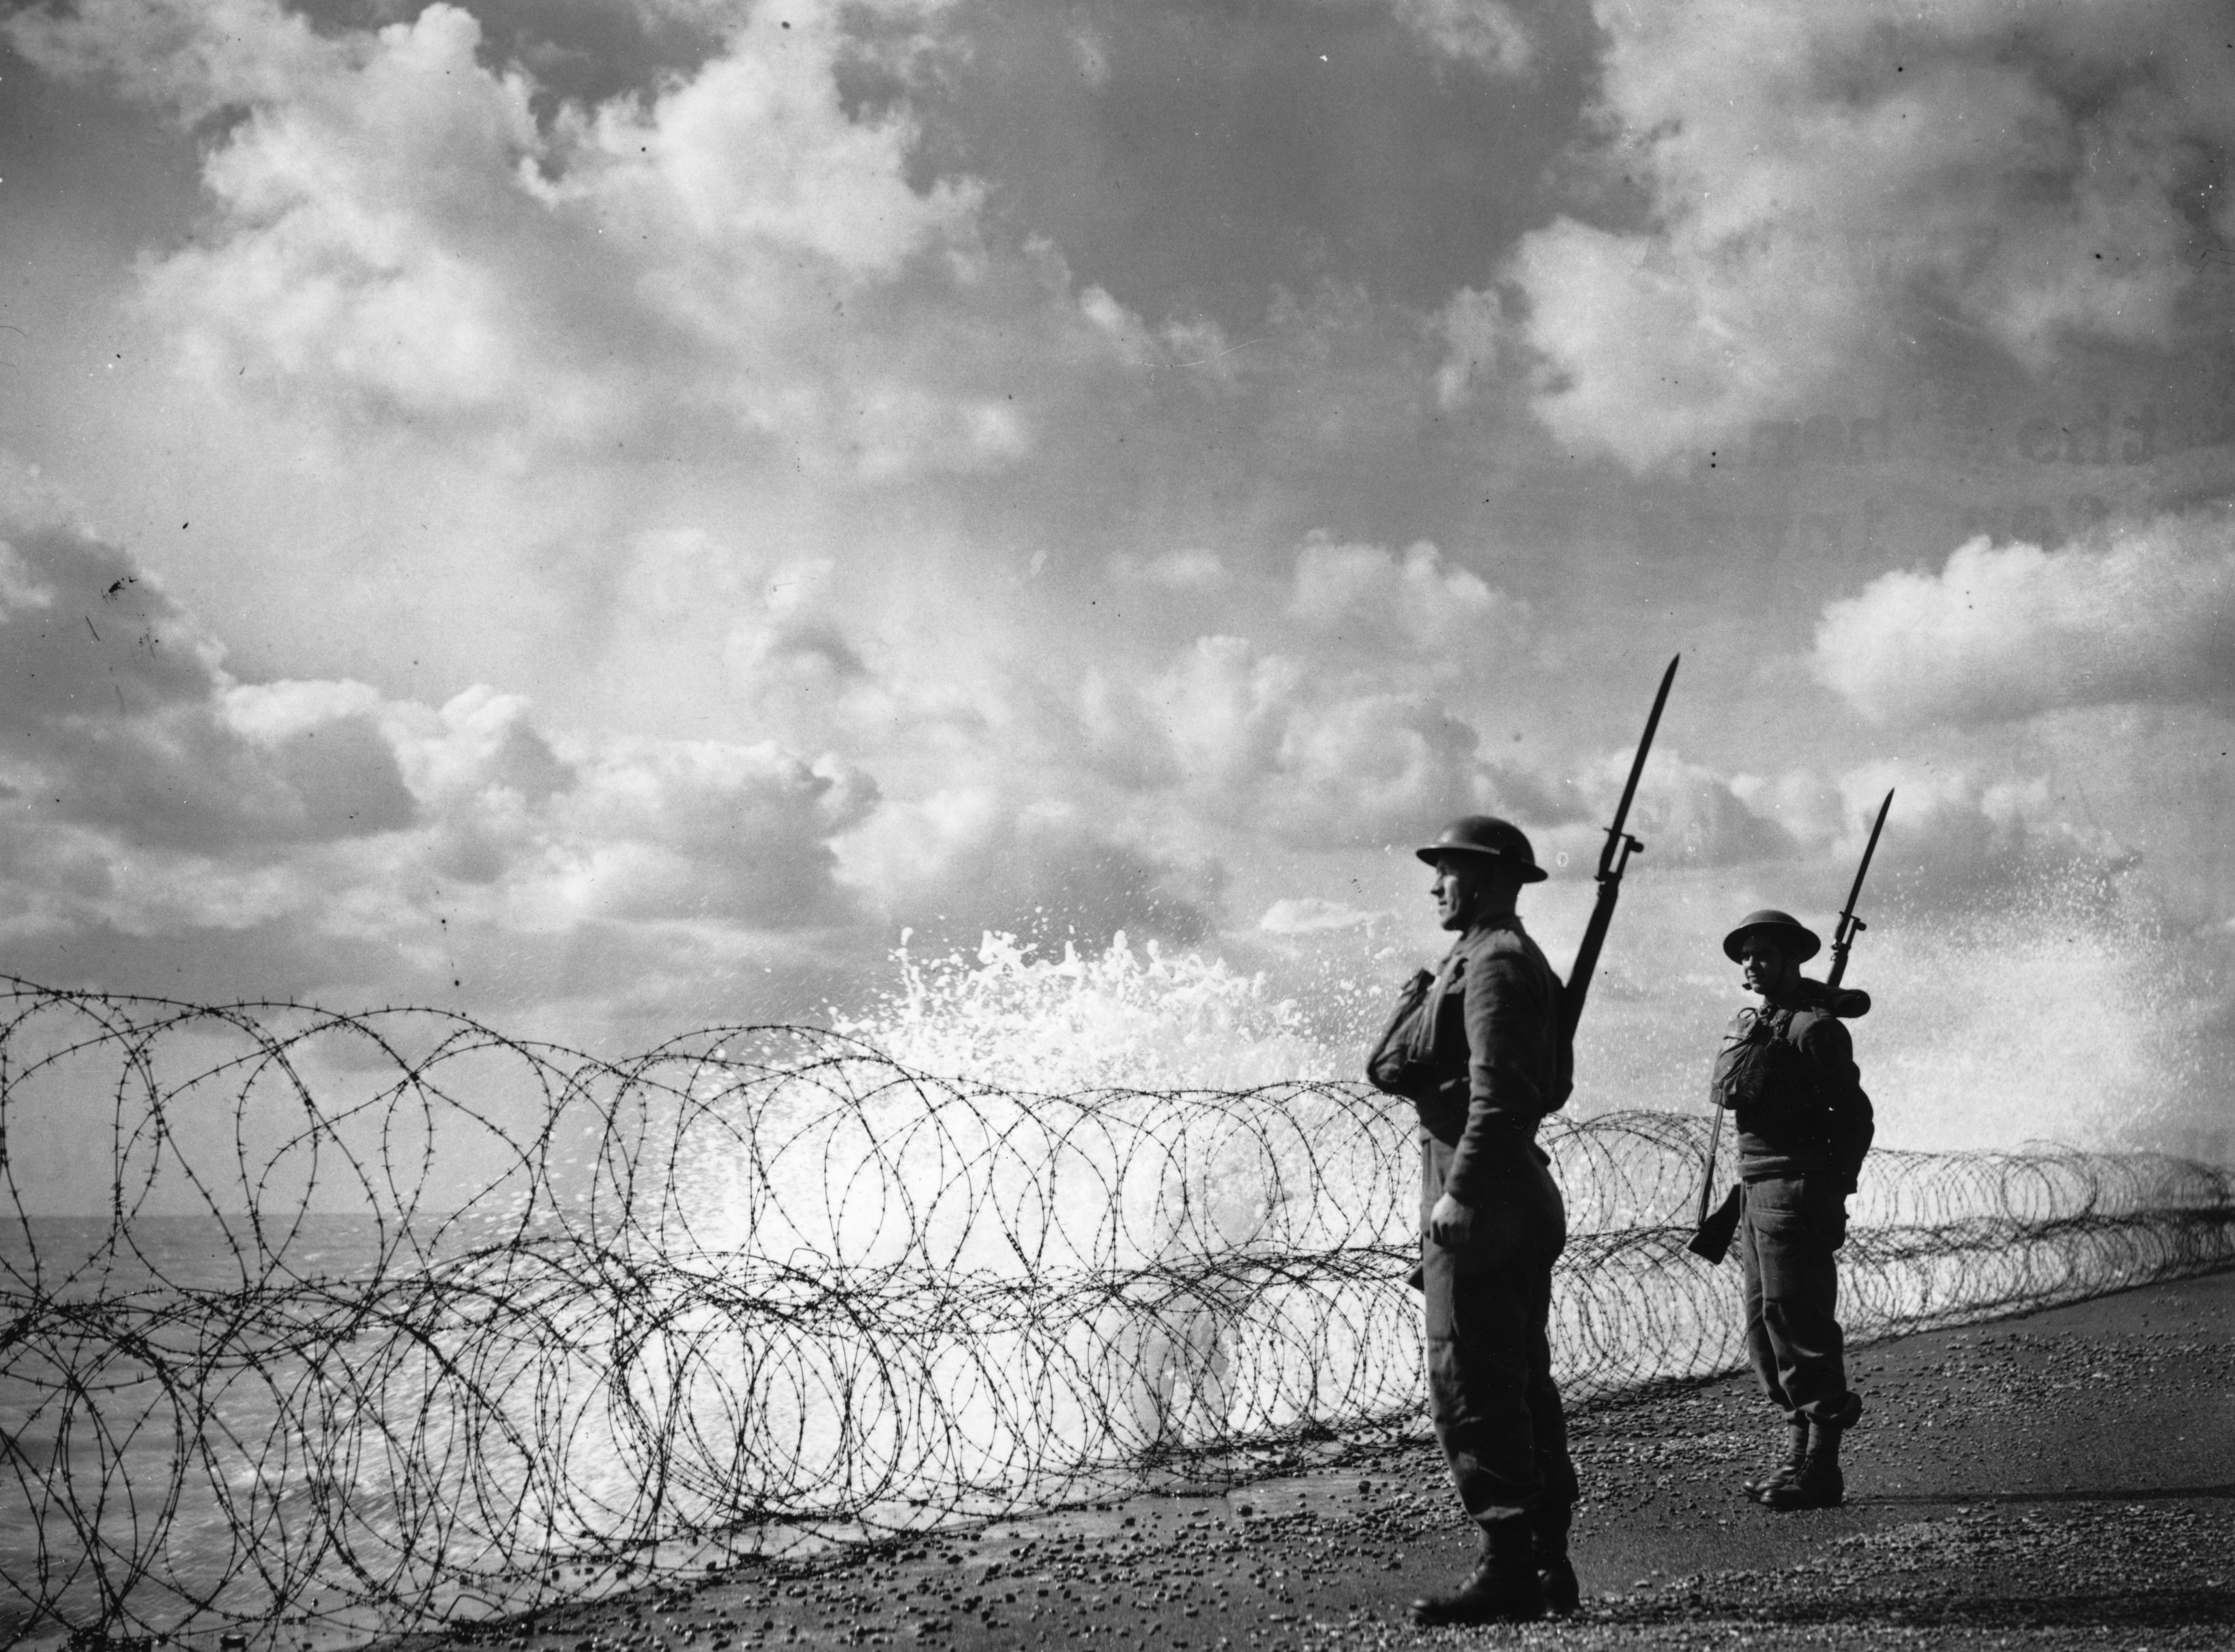 Soldiers guard England's south coast behind a bank of banned wire on 2 September 1940